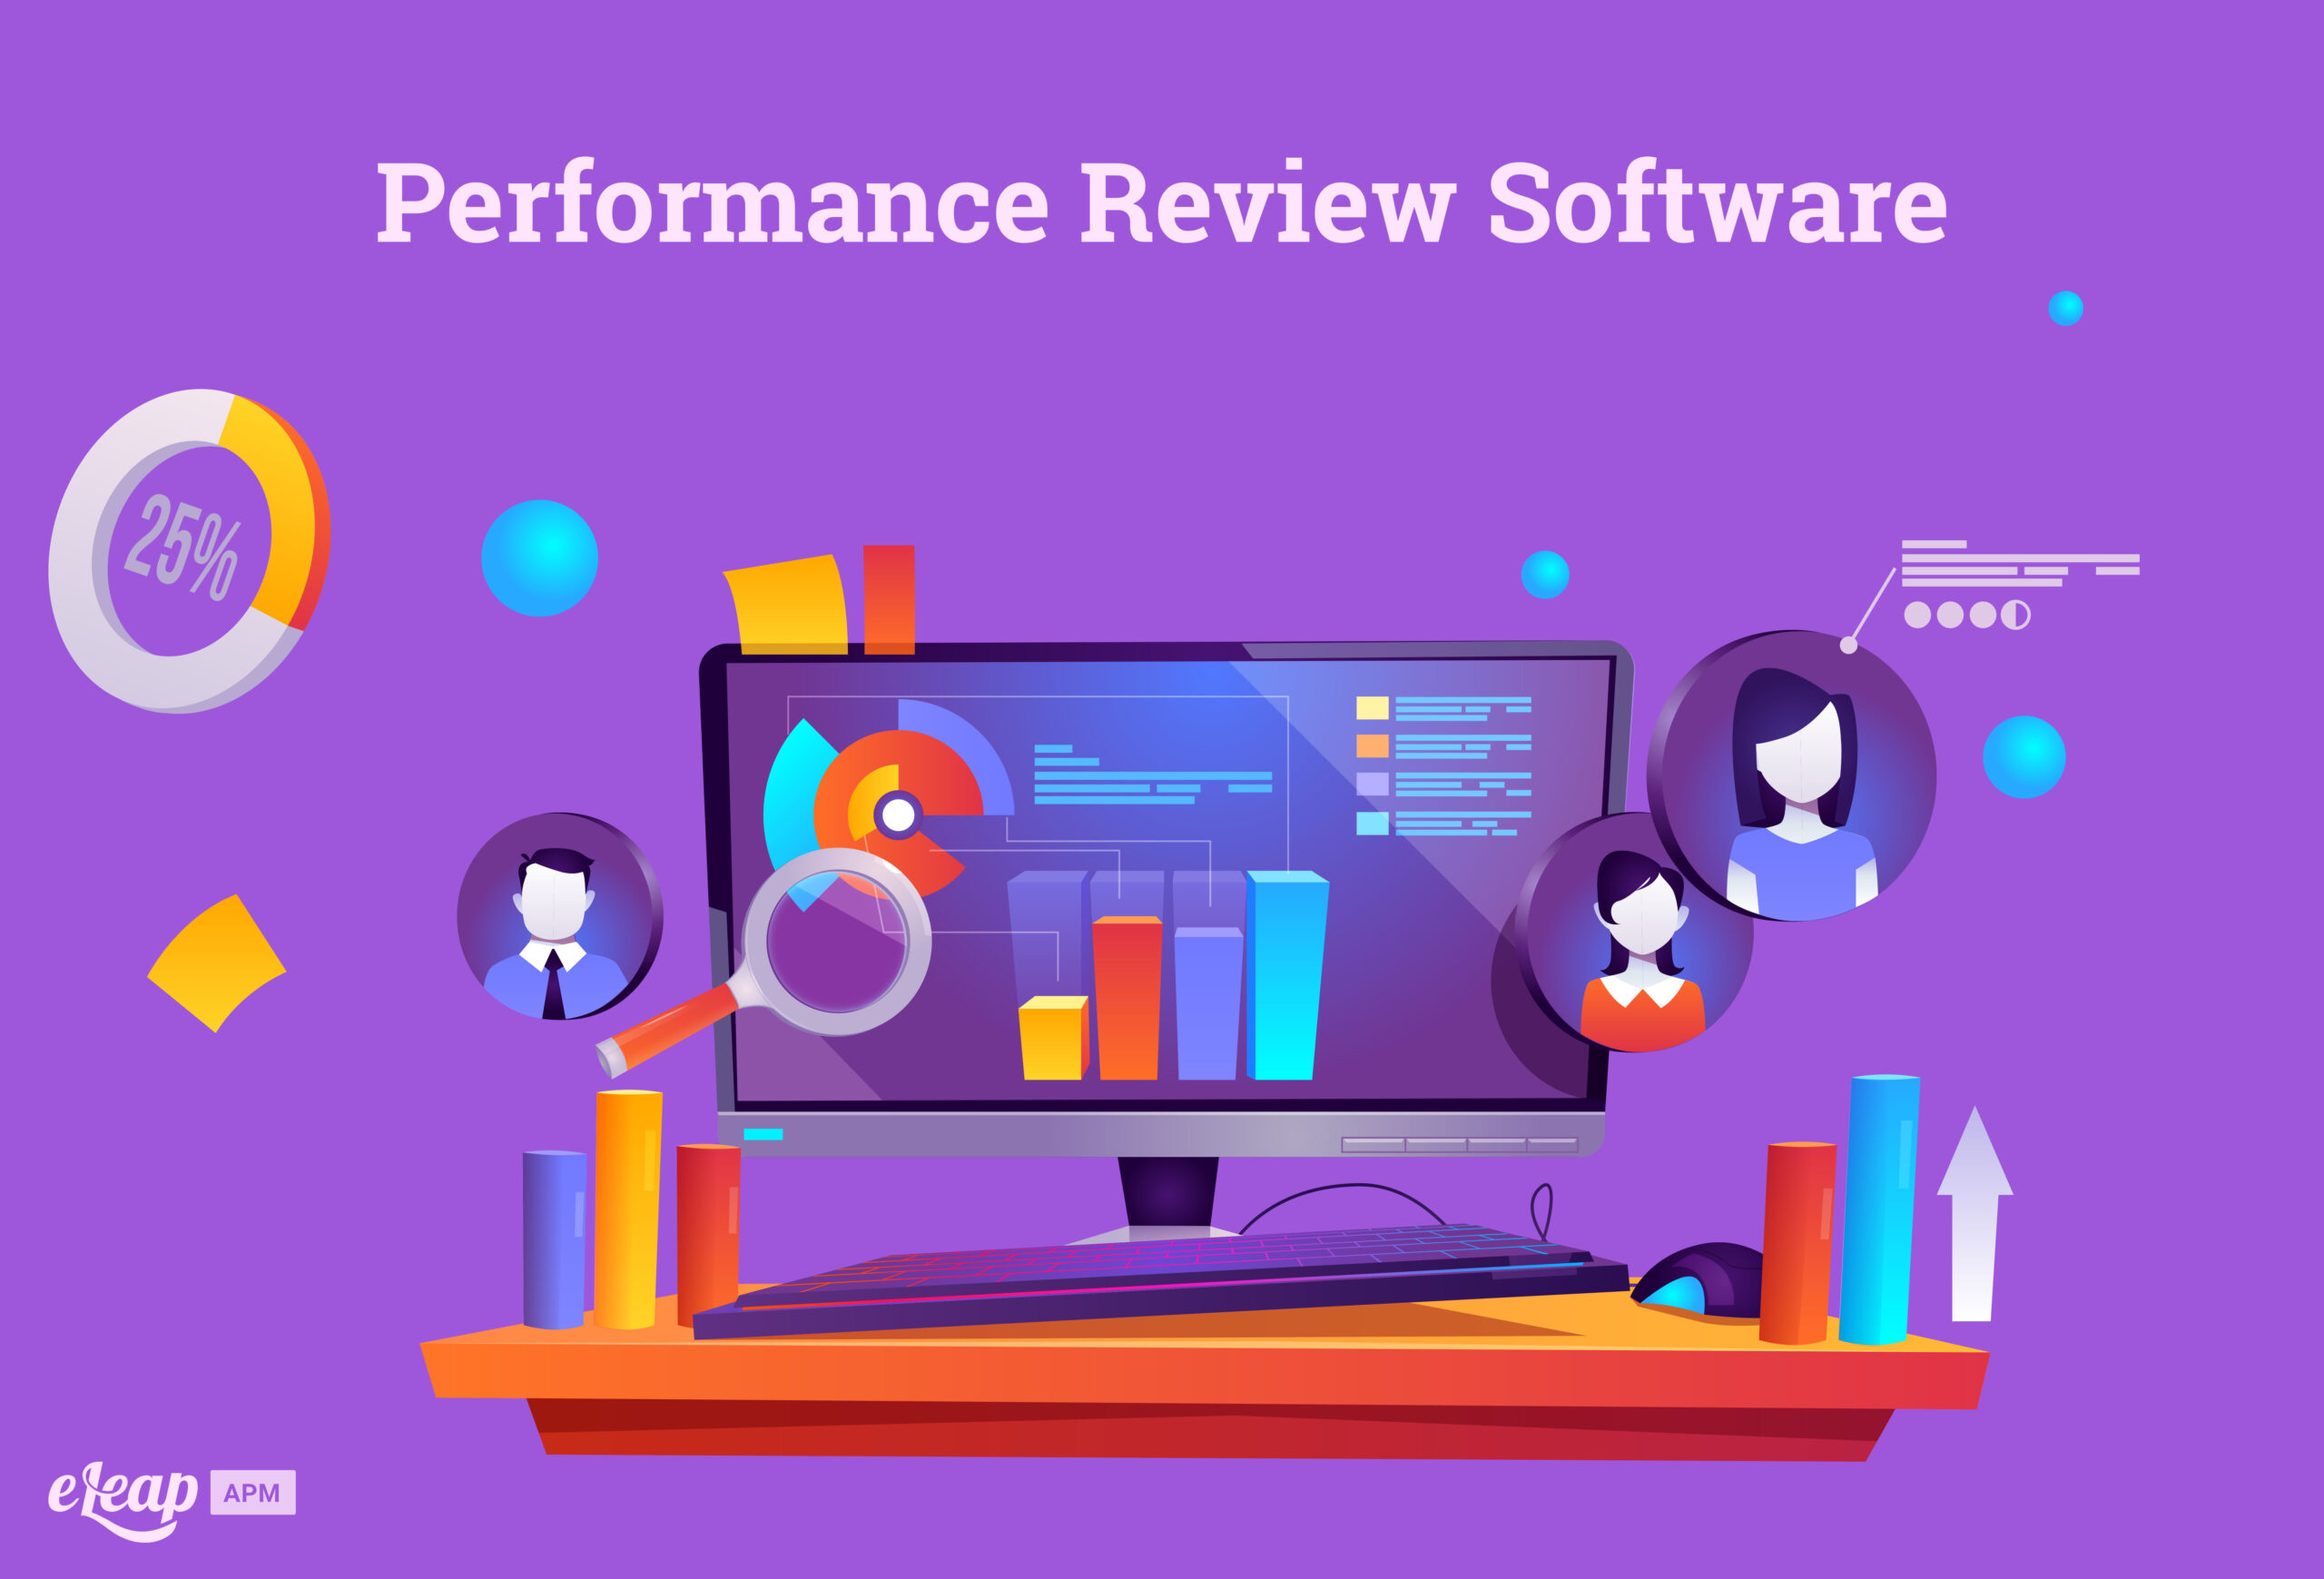 Performance Review Software